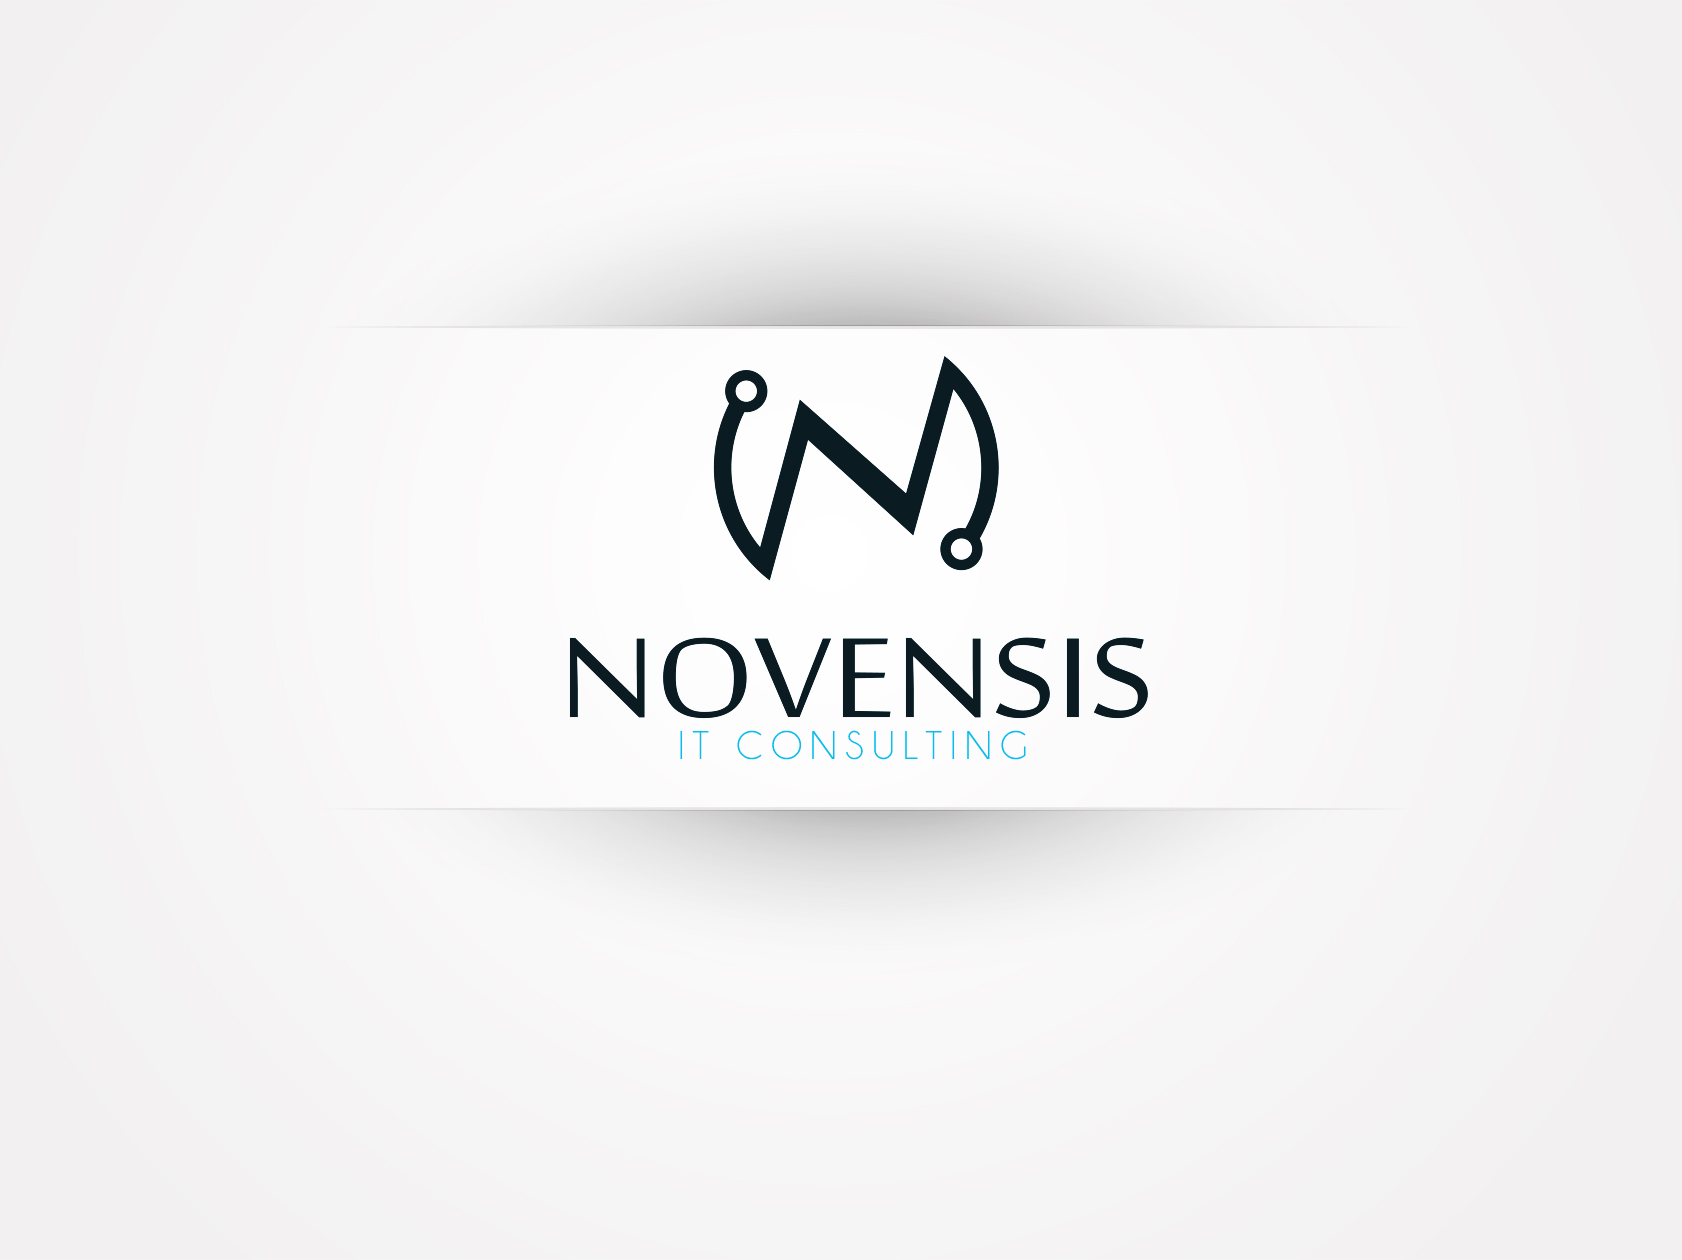 Logo Design by OmegaDesigns - Entry No. 154 in the Logo Design Contest Novensis Logo Design.